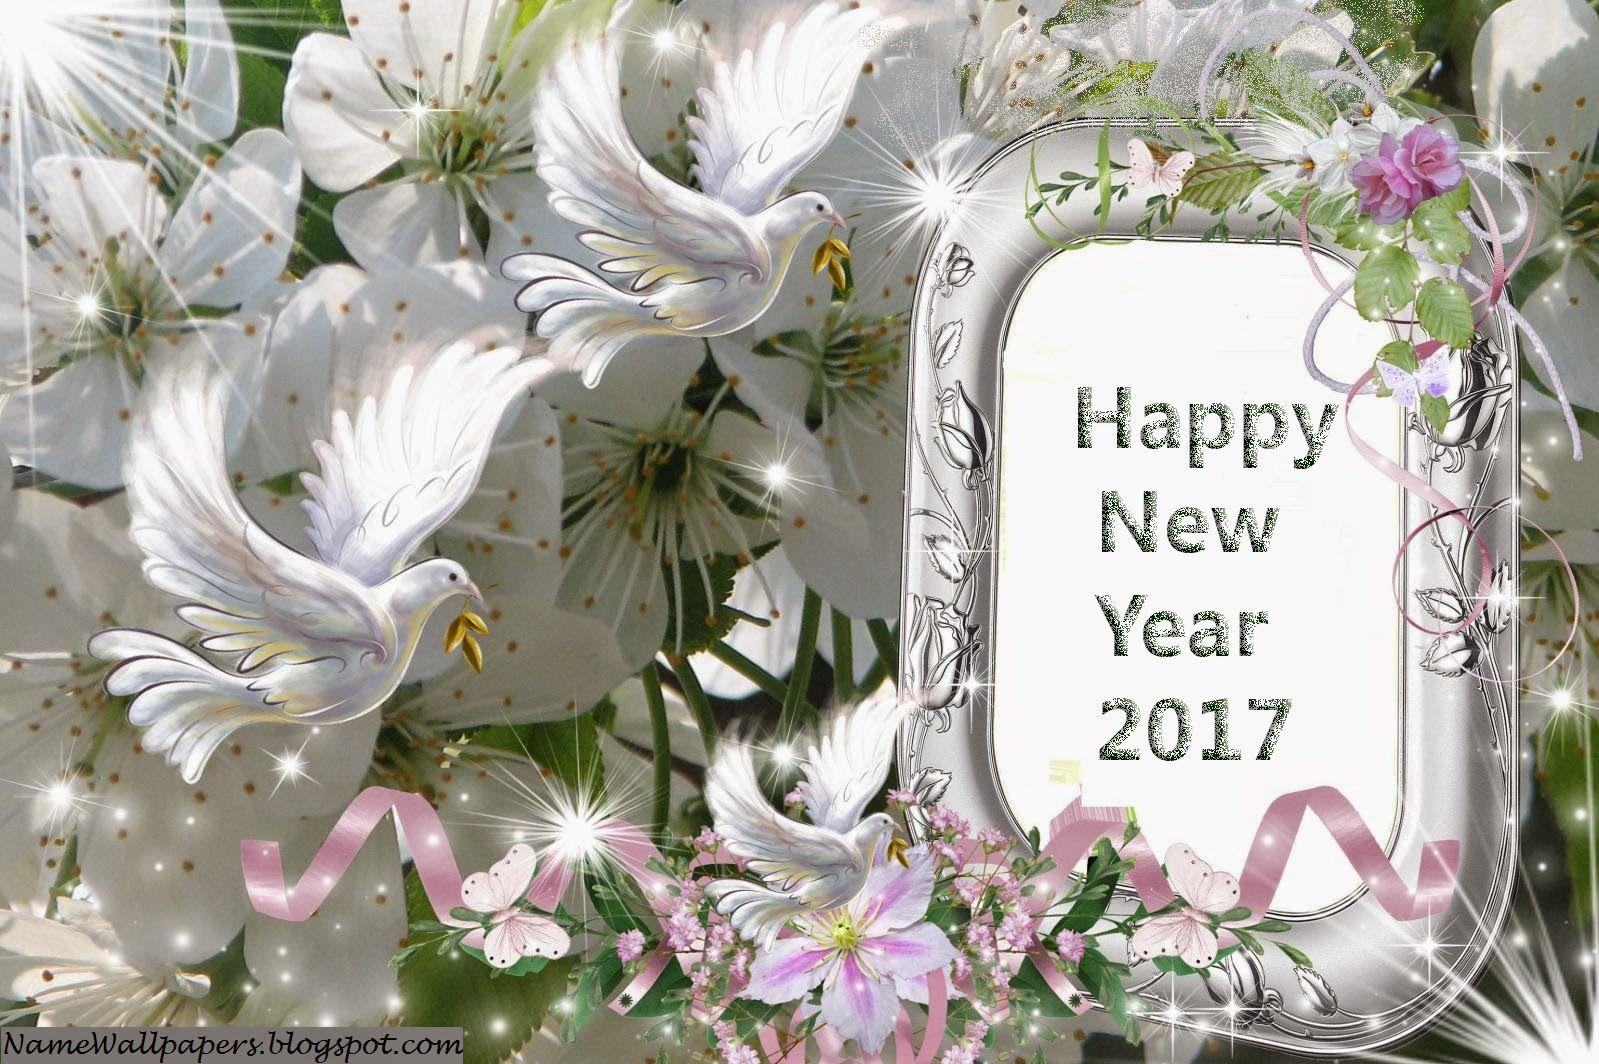 Happy new year 2017 wallpapers hd images pictures 2017 download happy new year 2017 wallpapers hd images pictures 2017 download free happy new year 2017 kristyandbryce Image collections